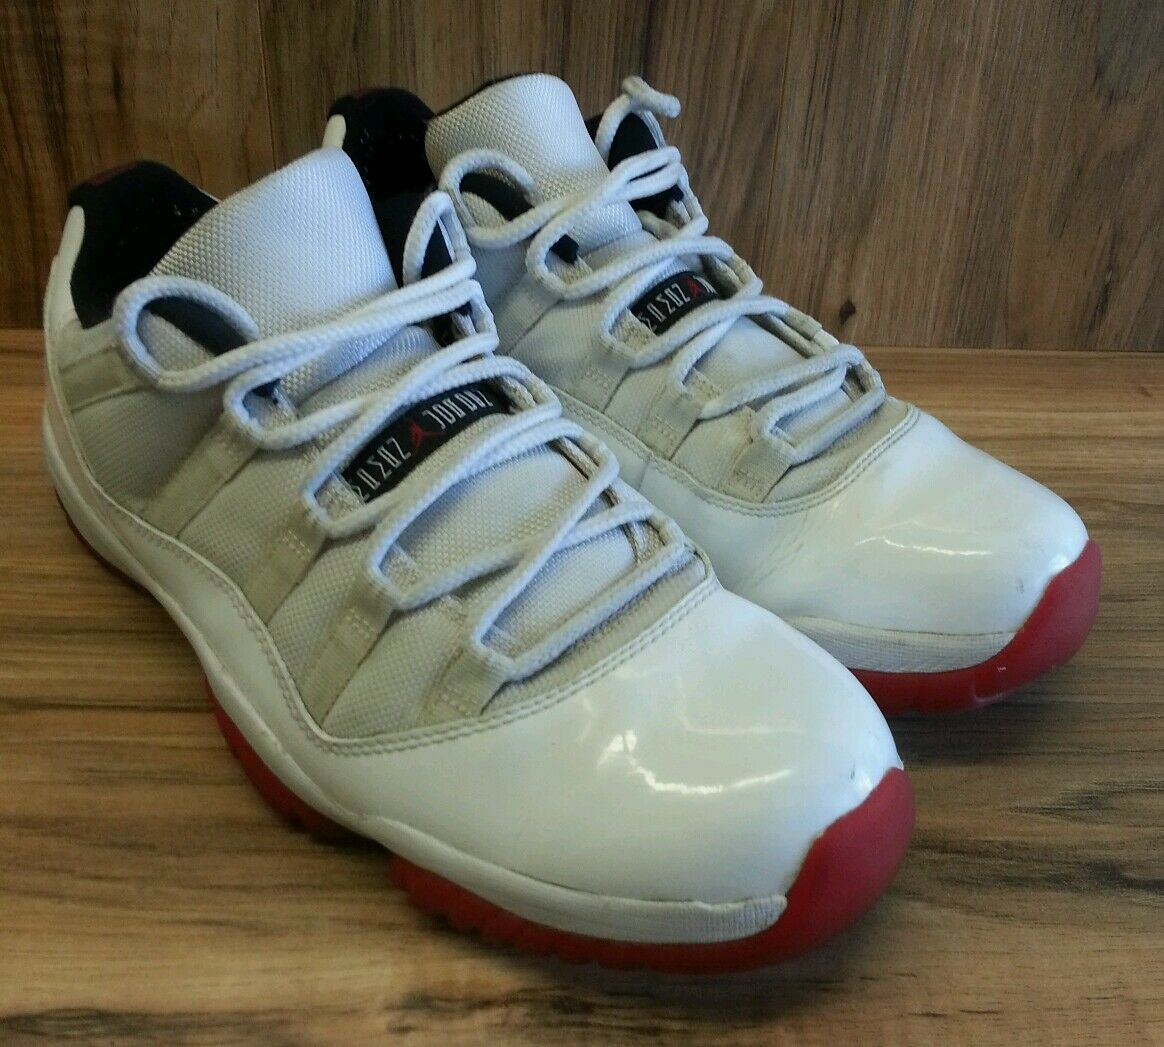 Nike Air Jordan XI 11 Retro Low White/Varsity Red-Black 2012 528895-101 SZ 11.5